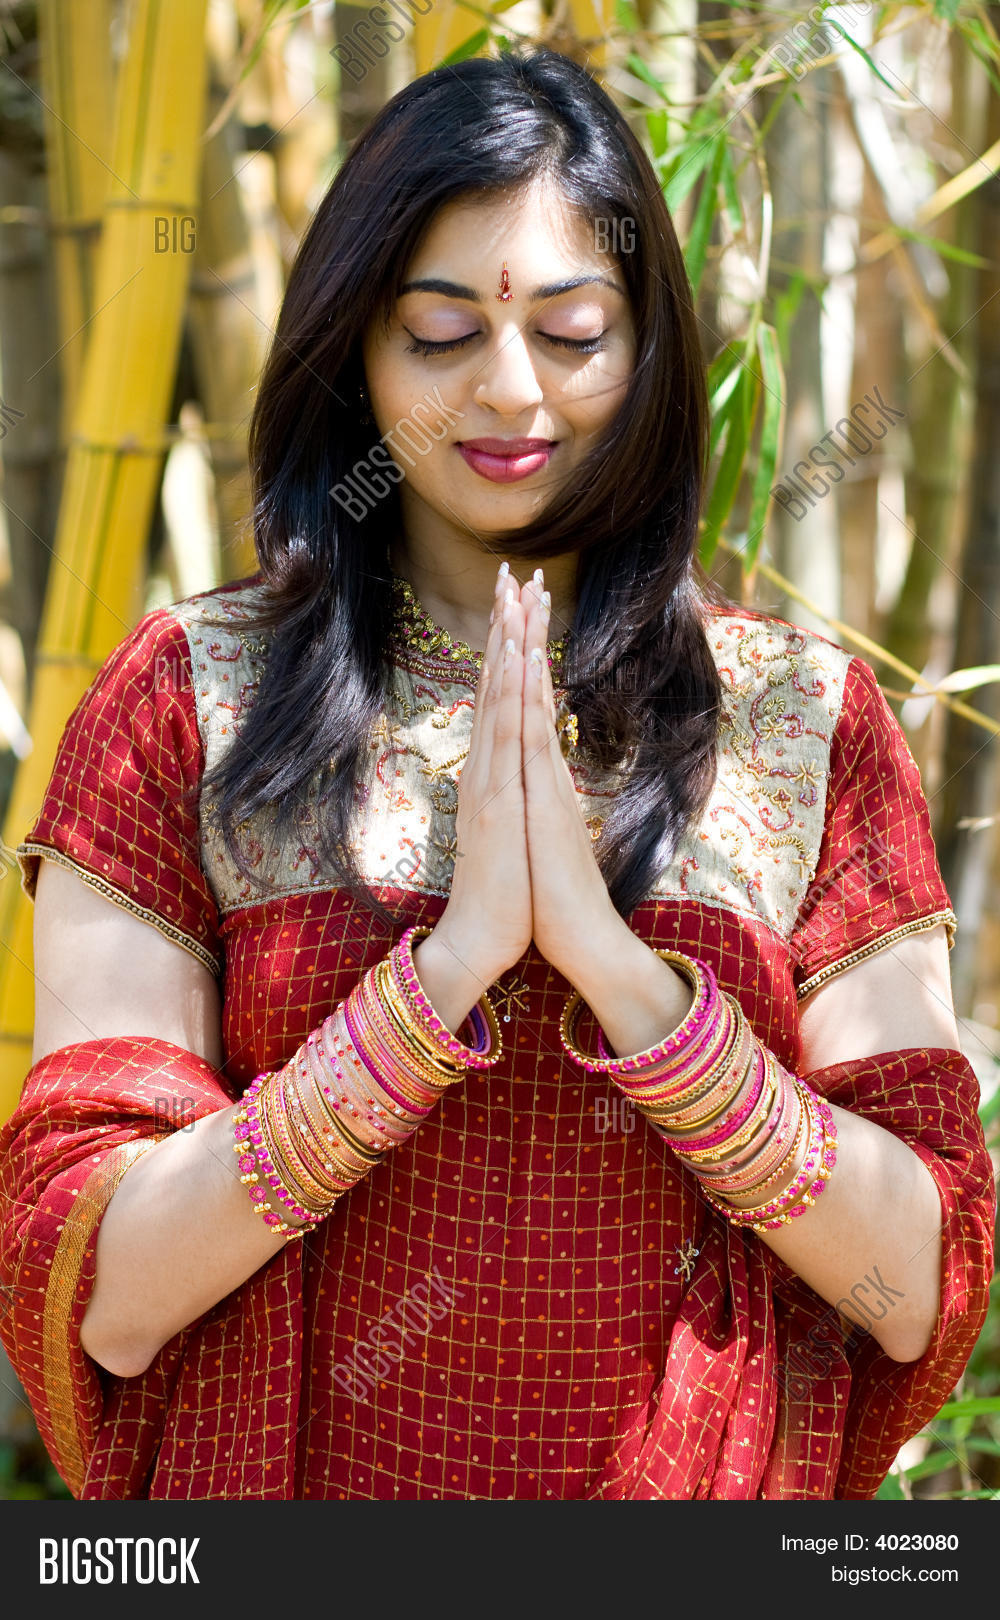 hindu single women in farnsworth Welcome to waymarkingcom waymarkingcom will provide you with the tools to share and discover unique and interesting locations on the planet.